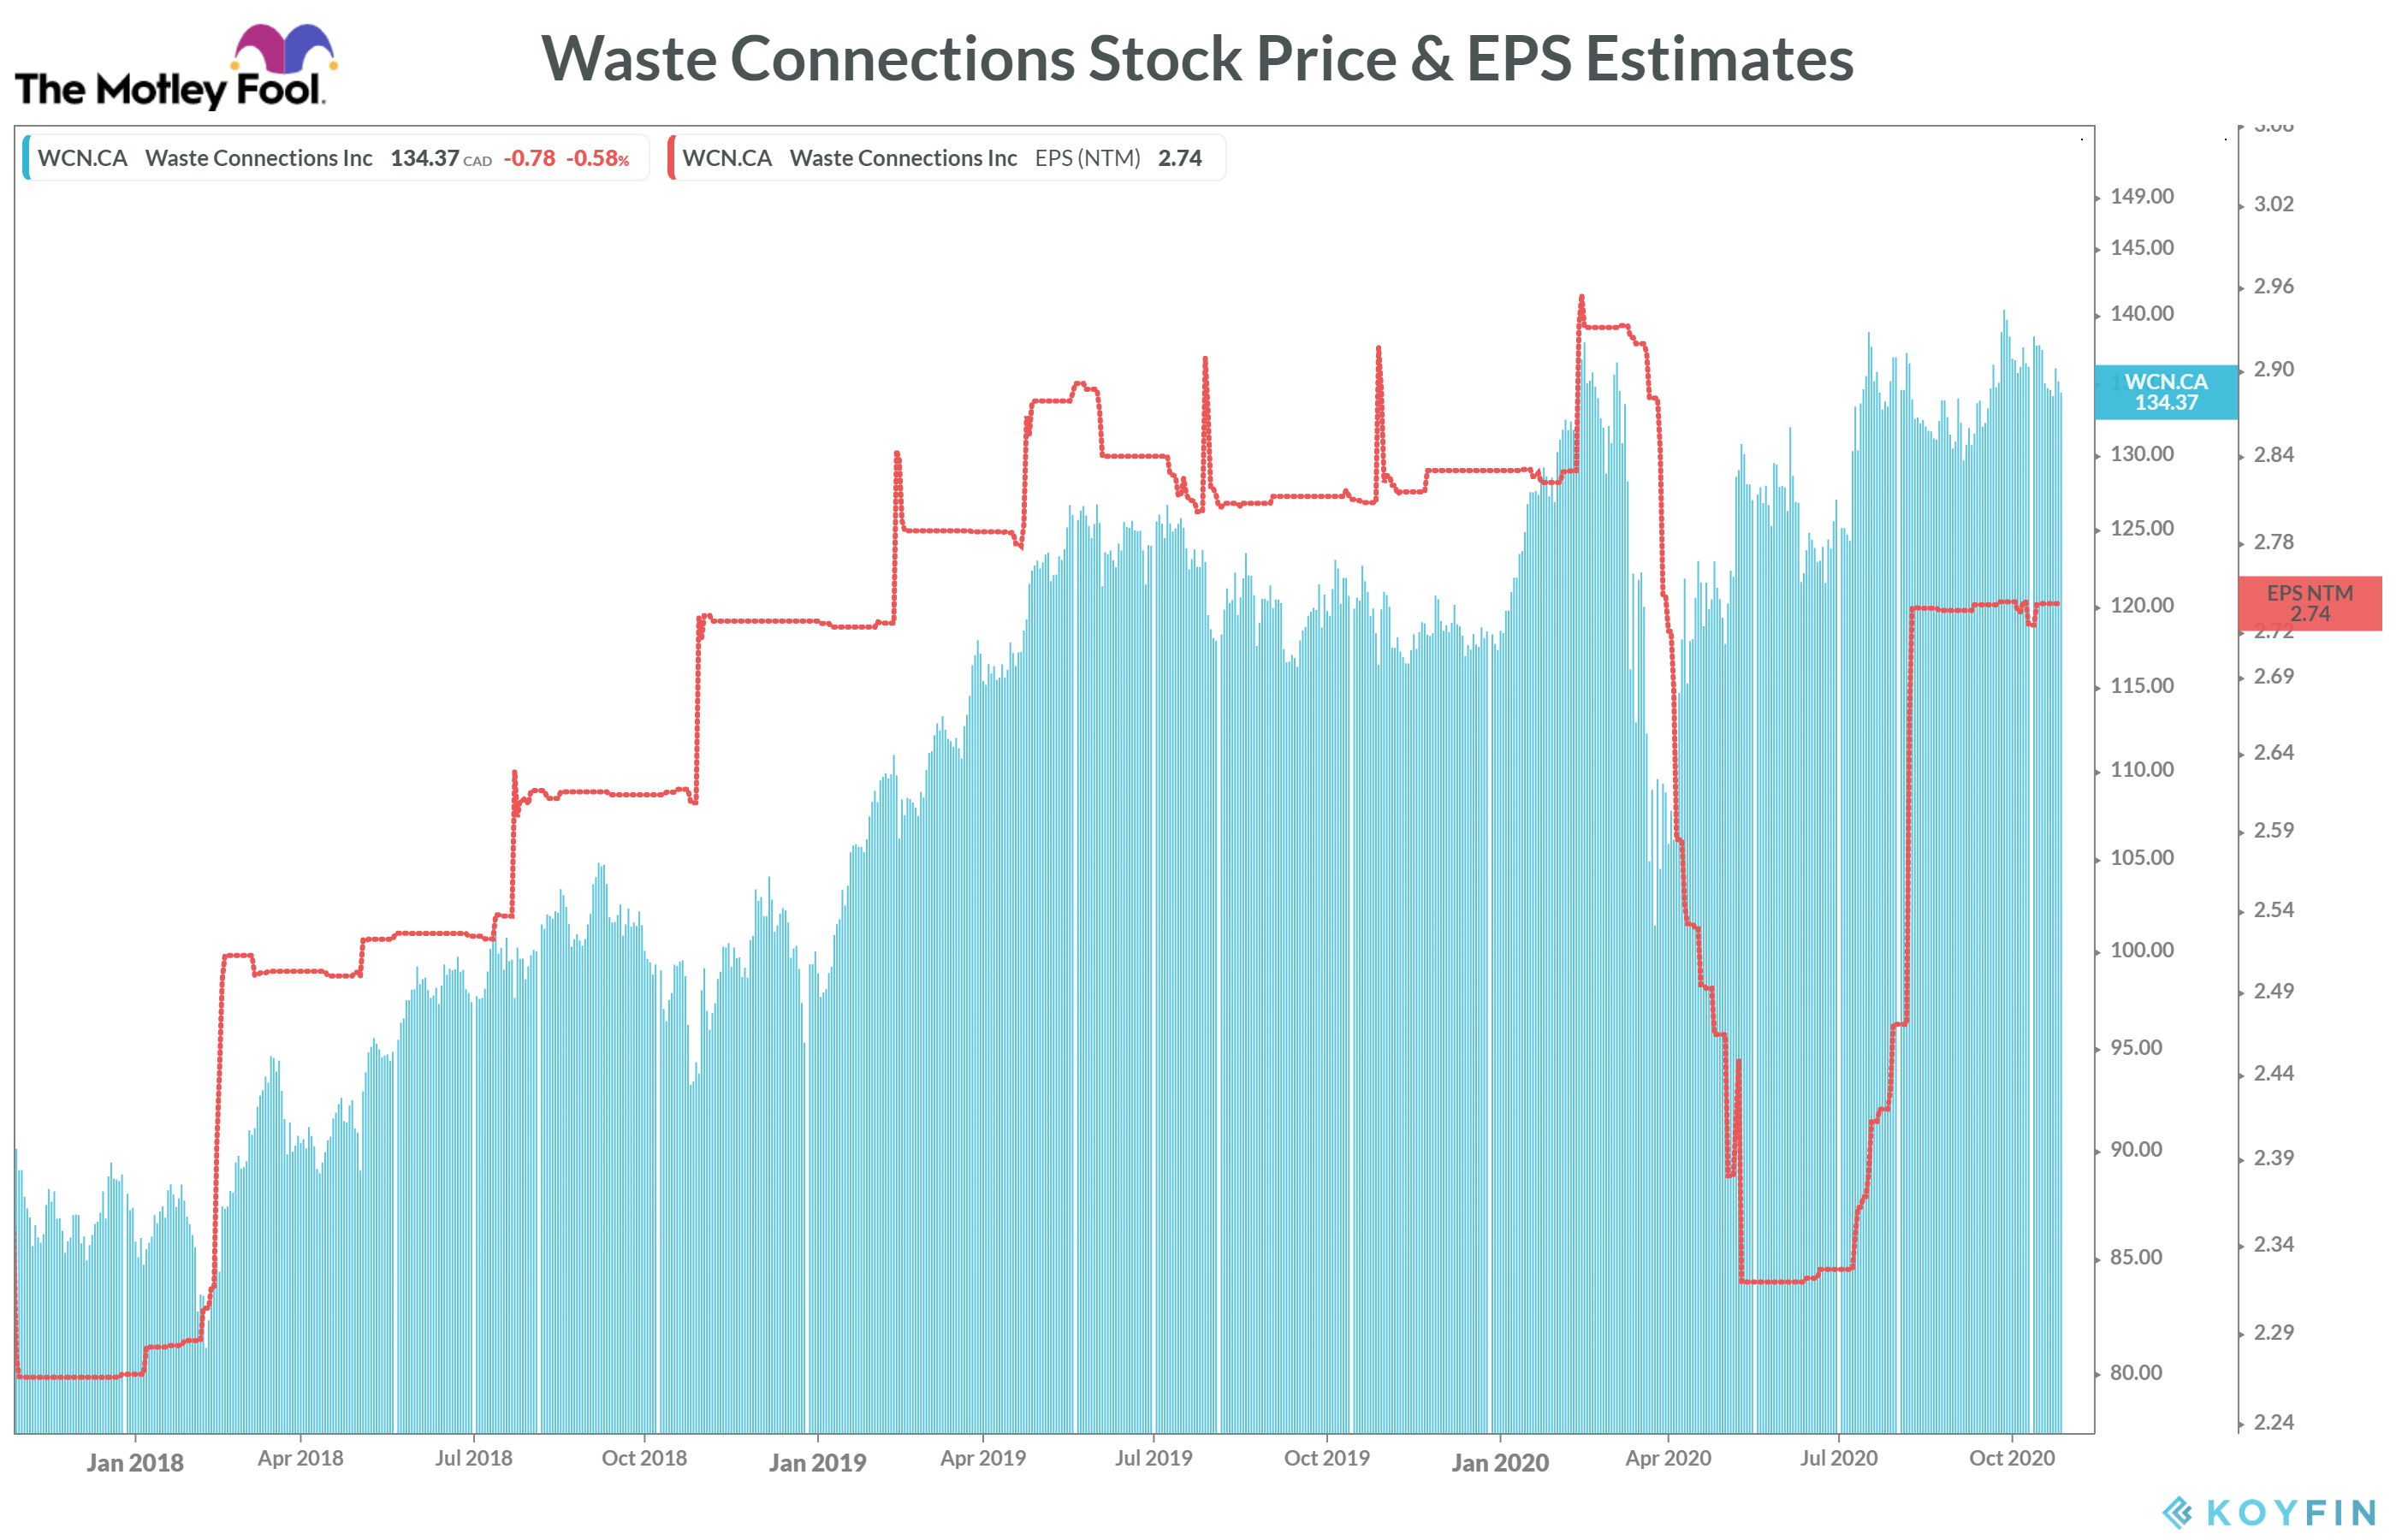 Waste Connections stock